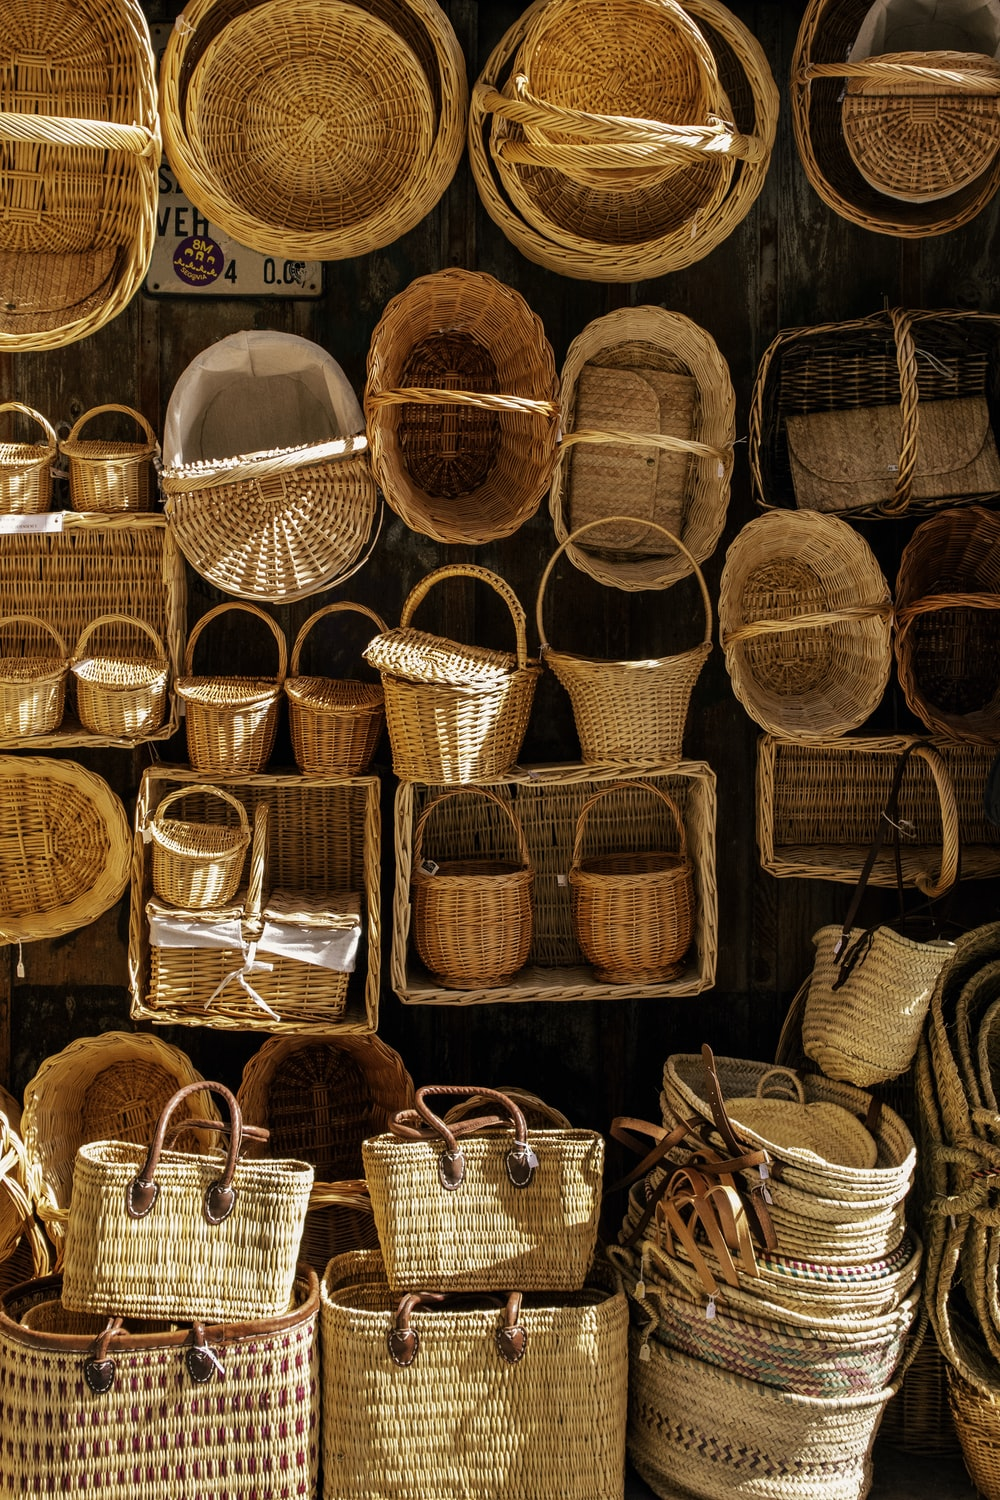 brown woven baskets on white table